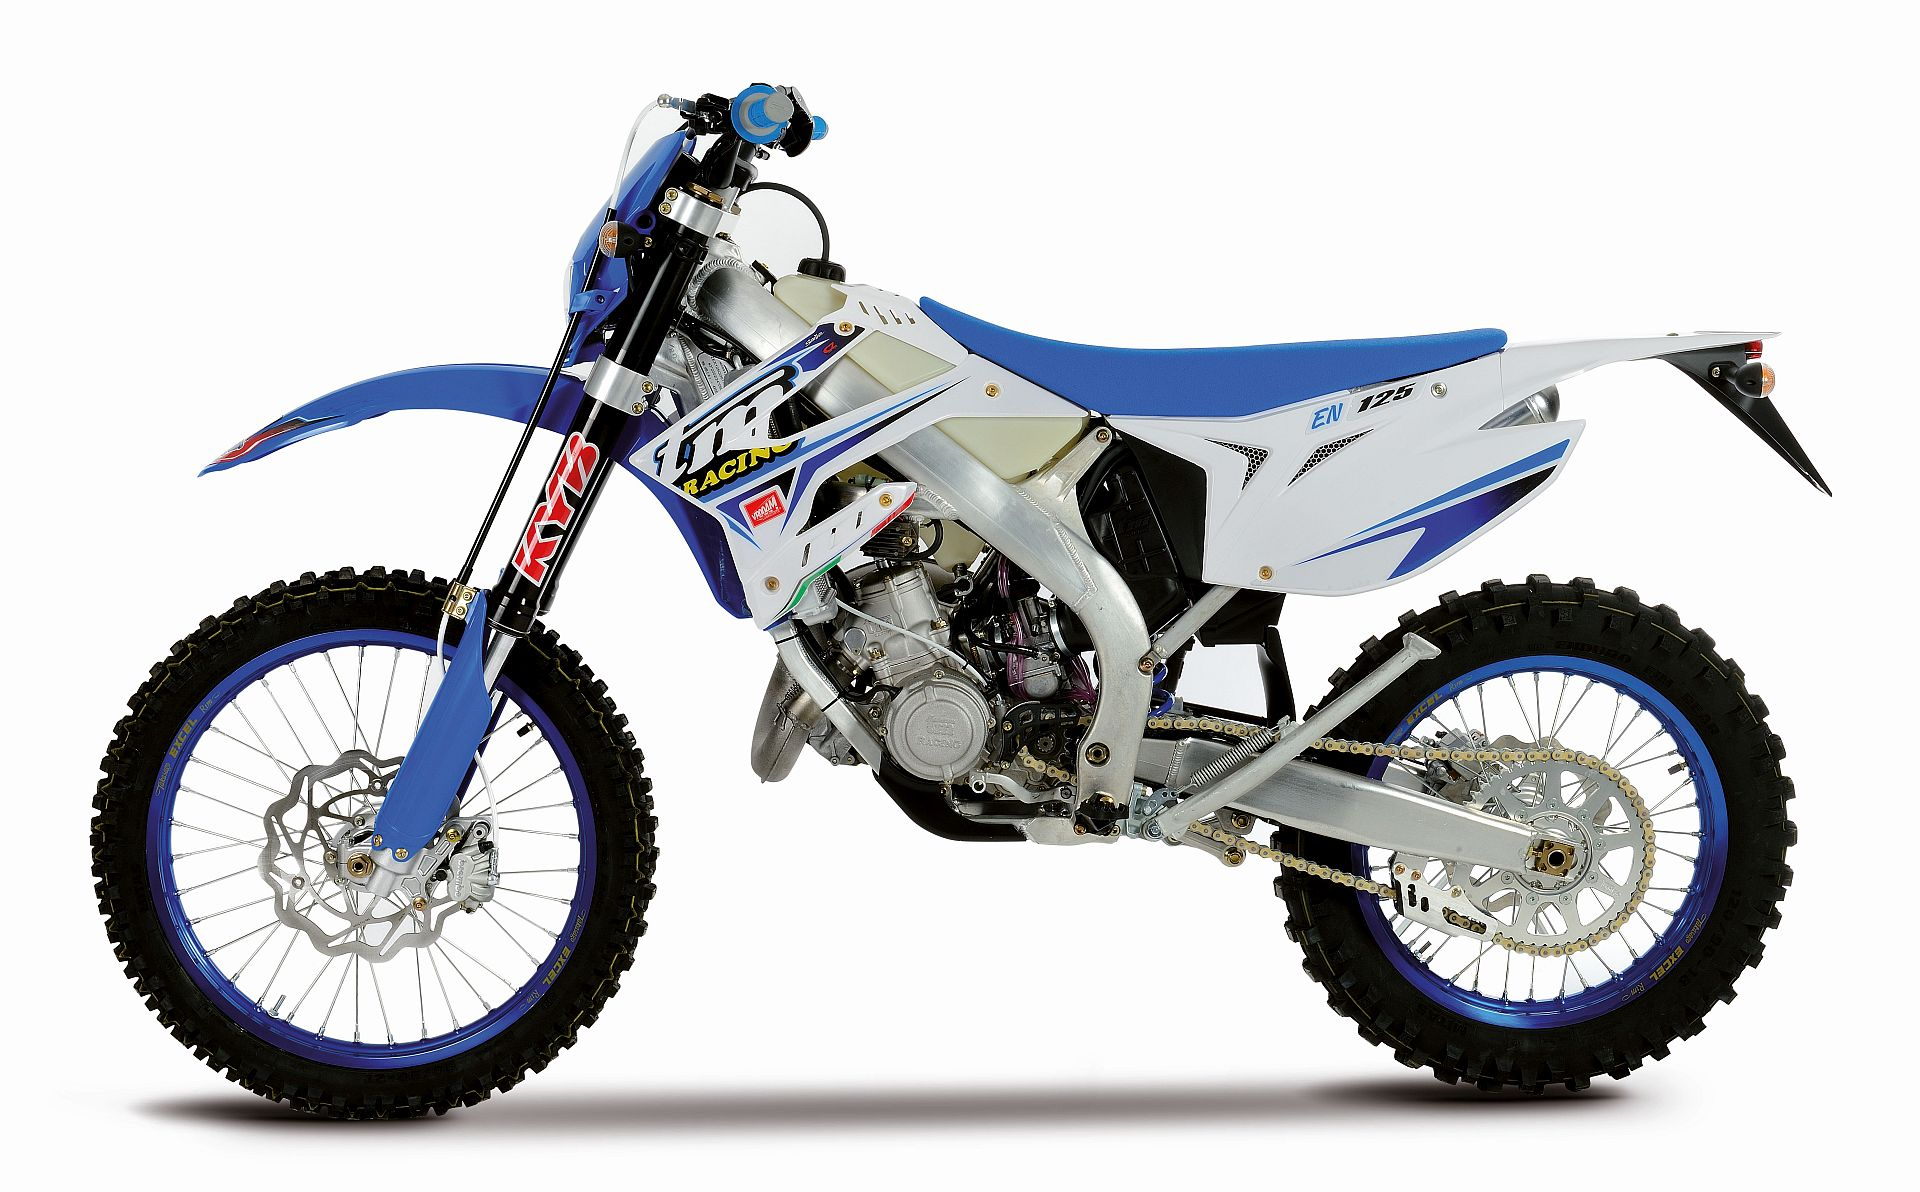 tm racing 2015 enduro mx range photo gallery enduro racing in ireland. Black Bedroom Furniture Sets. Home Design Ideas